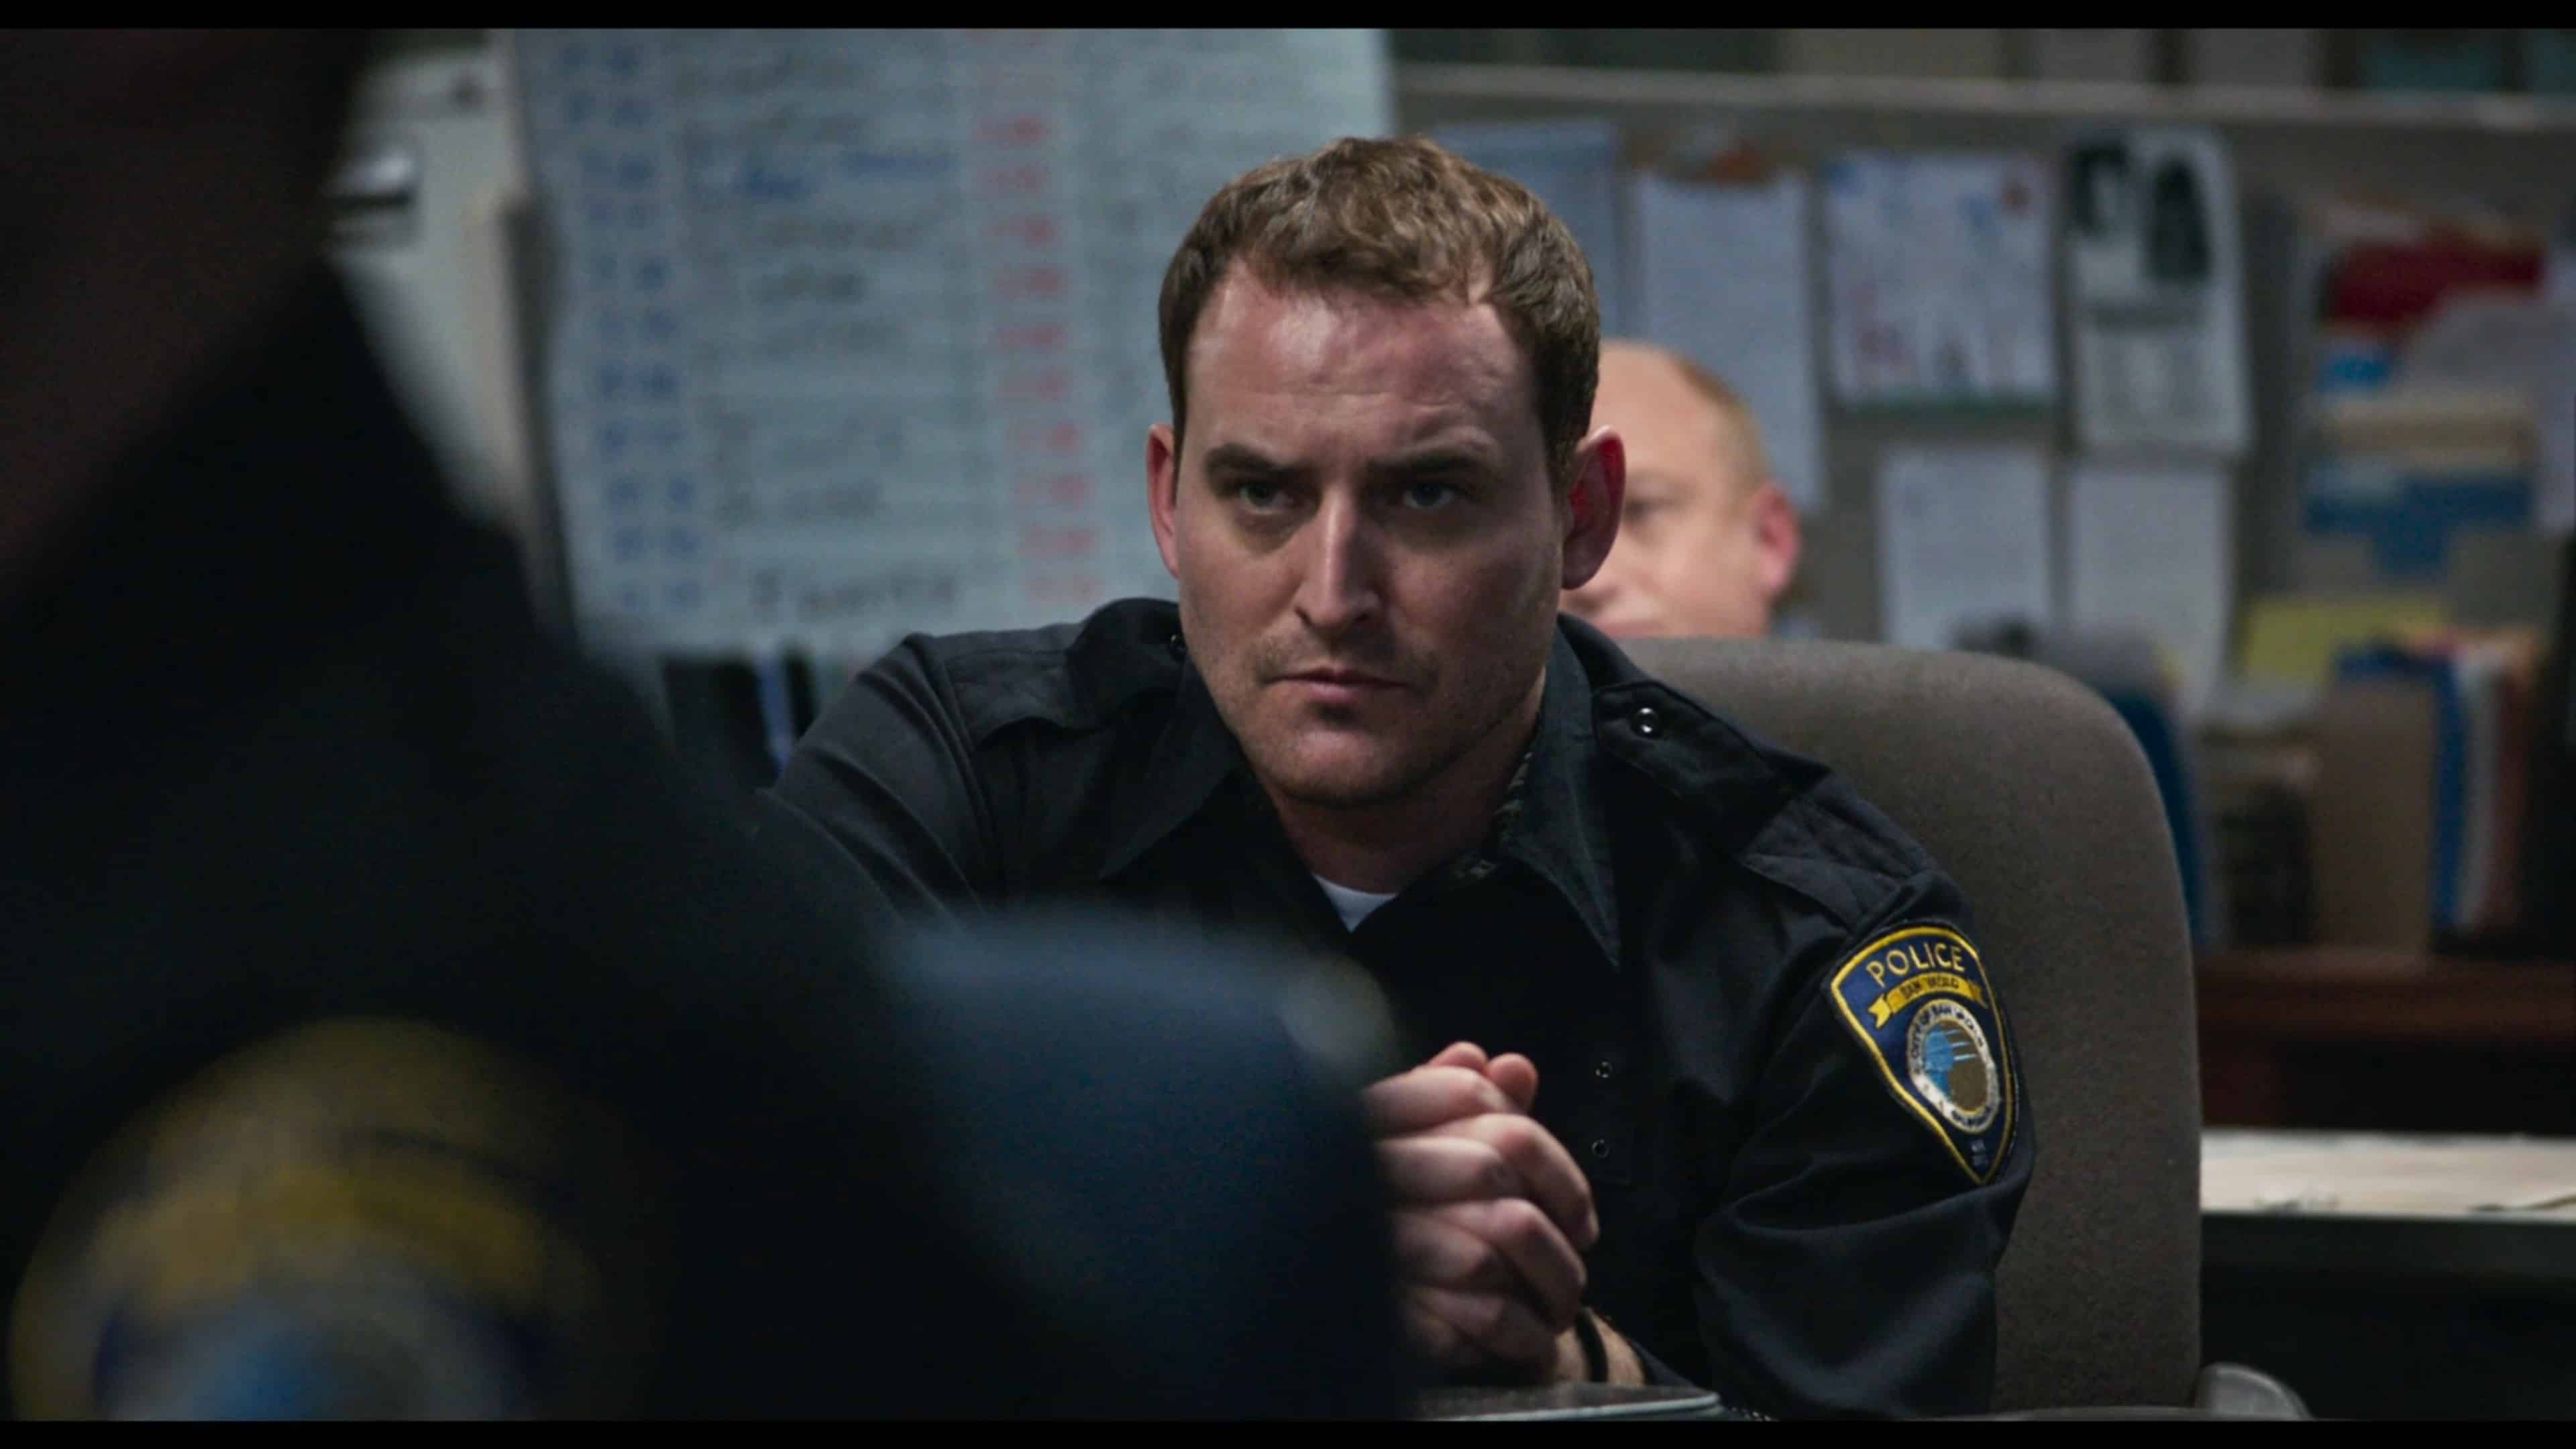 Officer Hollander (Ryan Mulkay) in a hostage situation